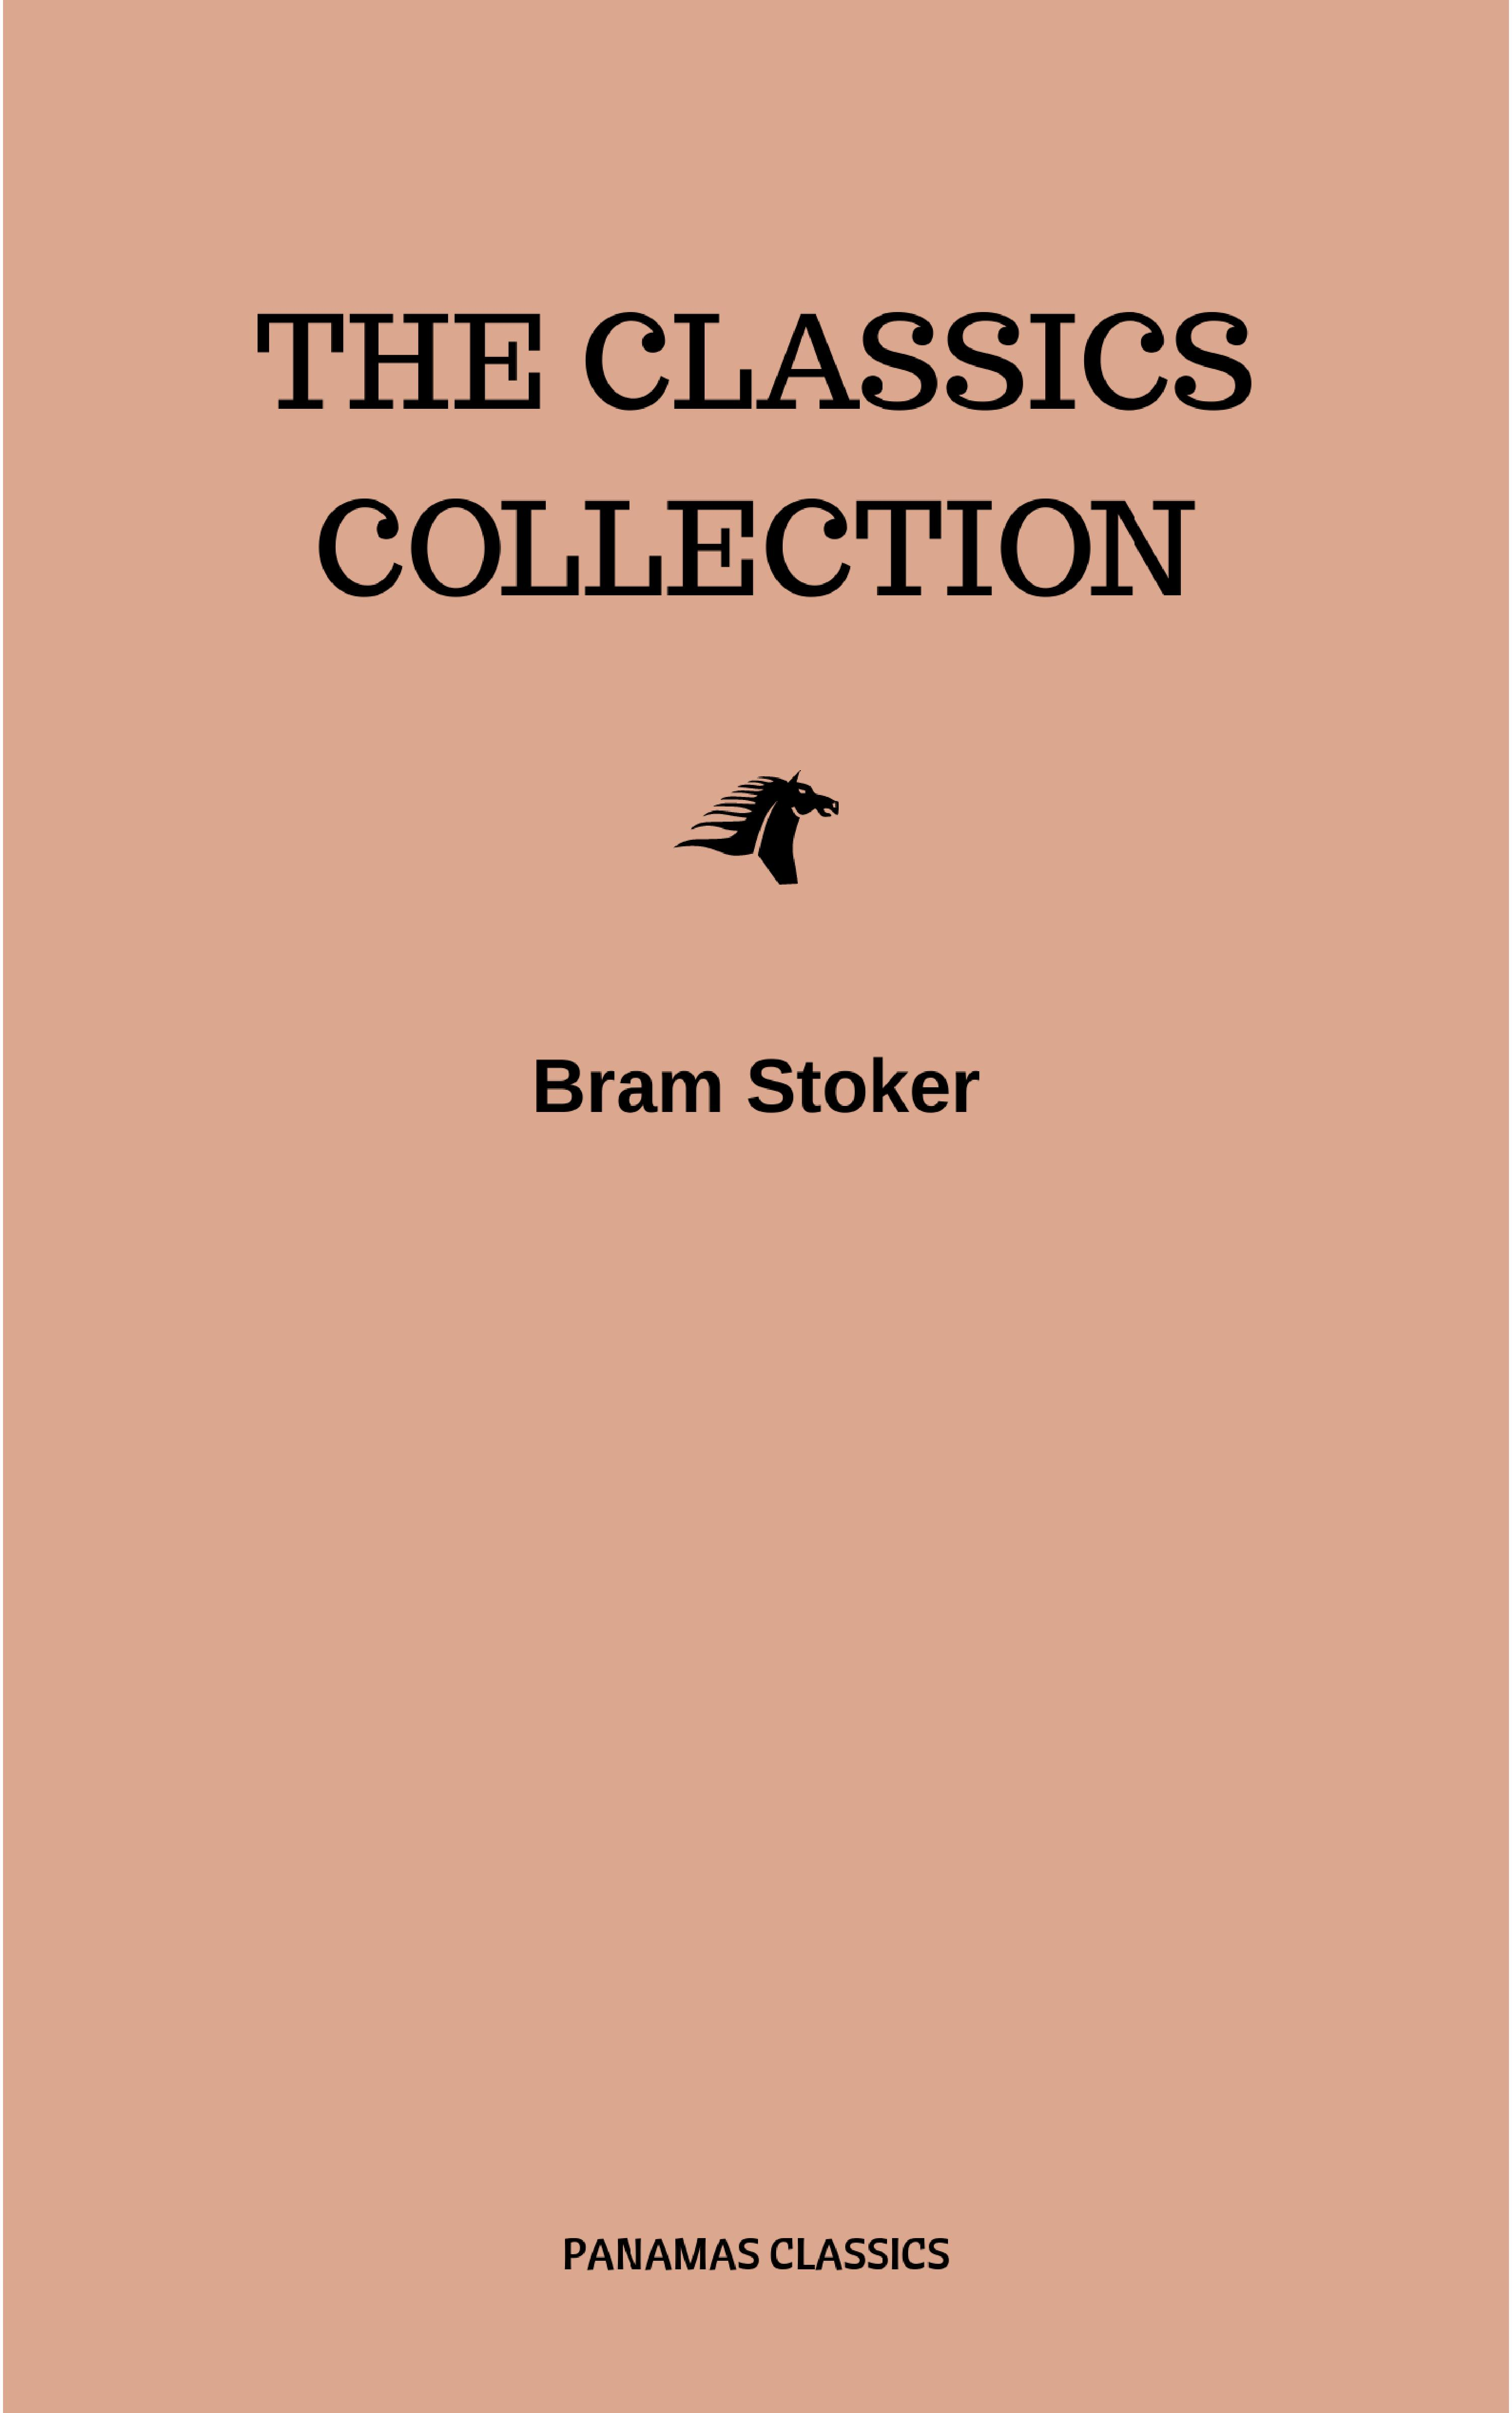 bram stoker the classics collection